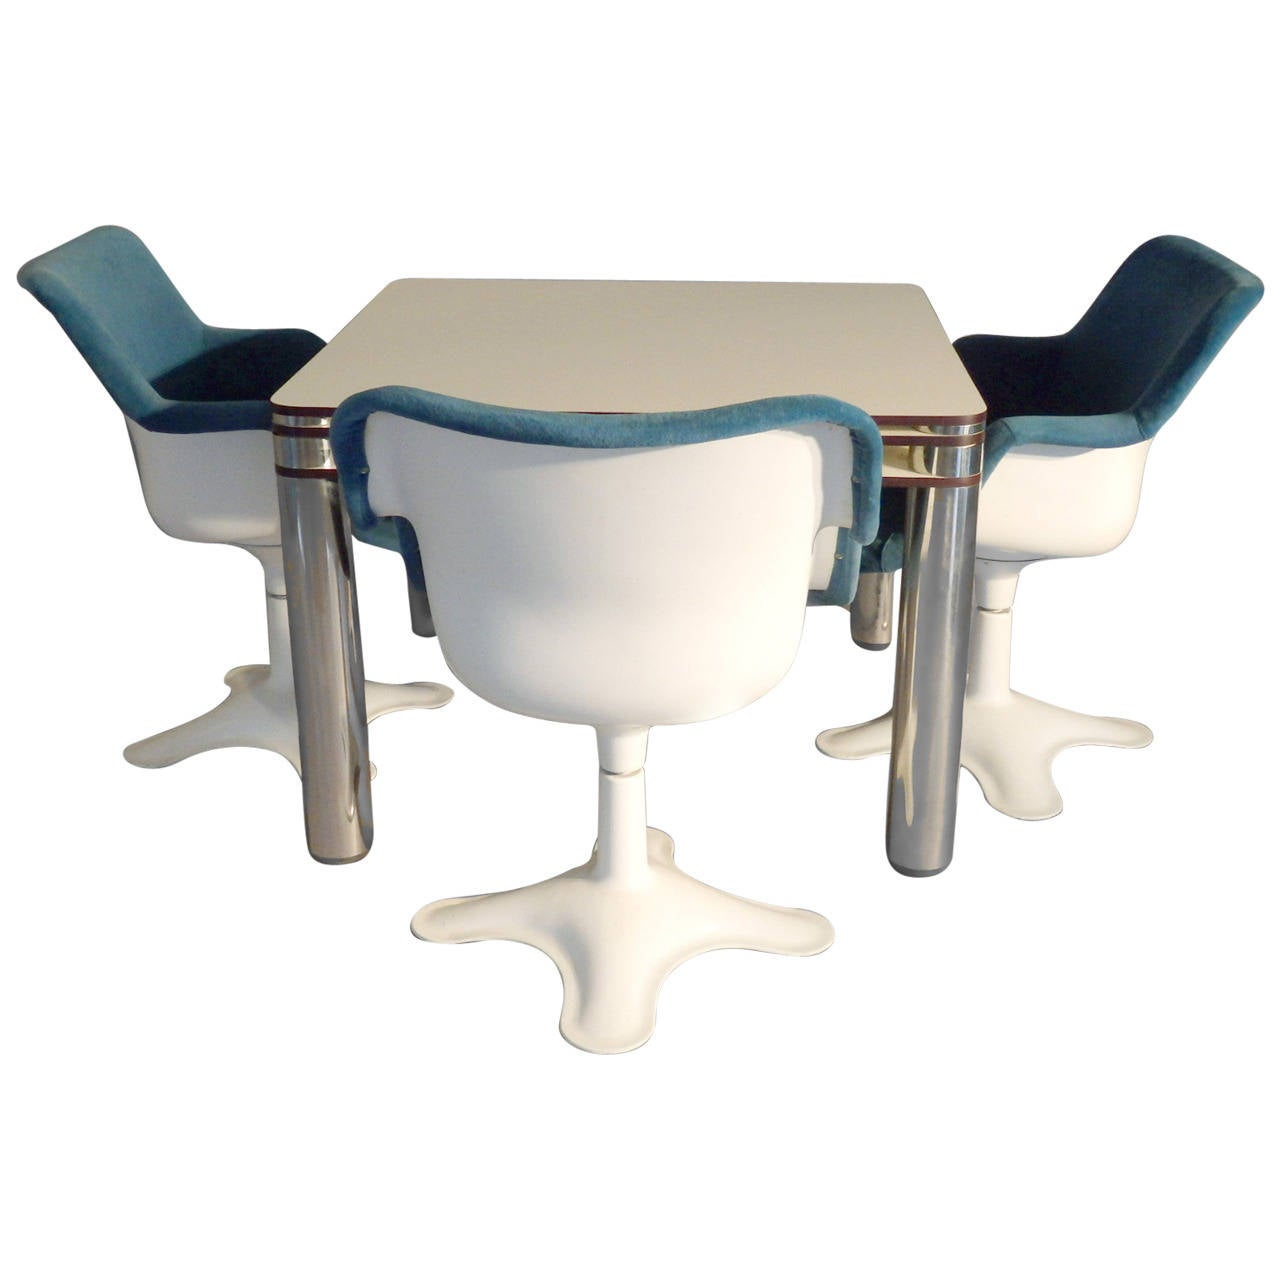 table with swivel chairs folding lawn heavy duty post modern italian poker game four